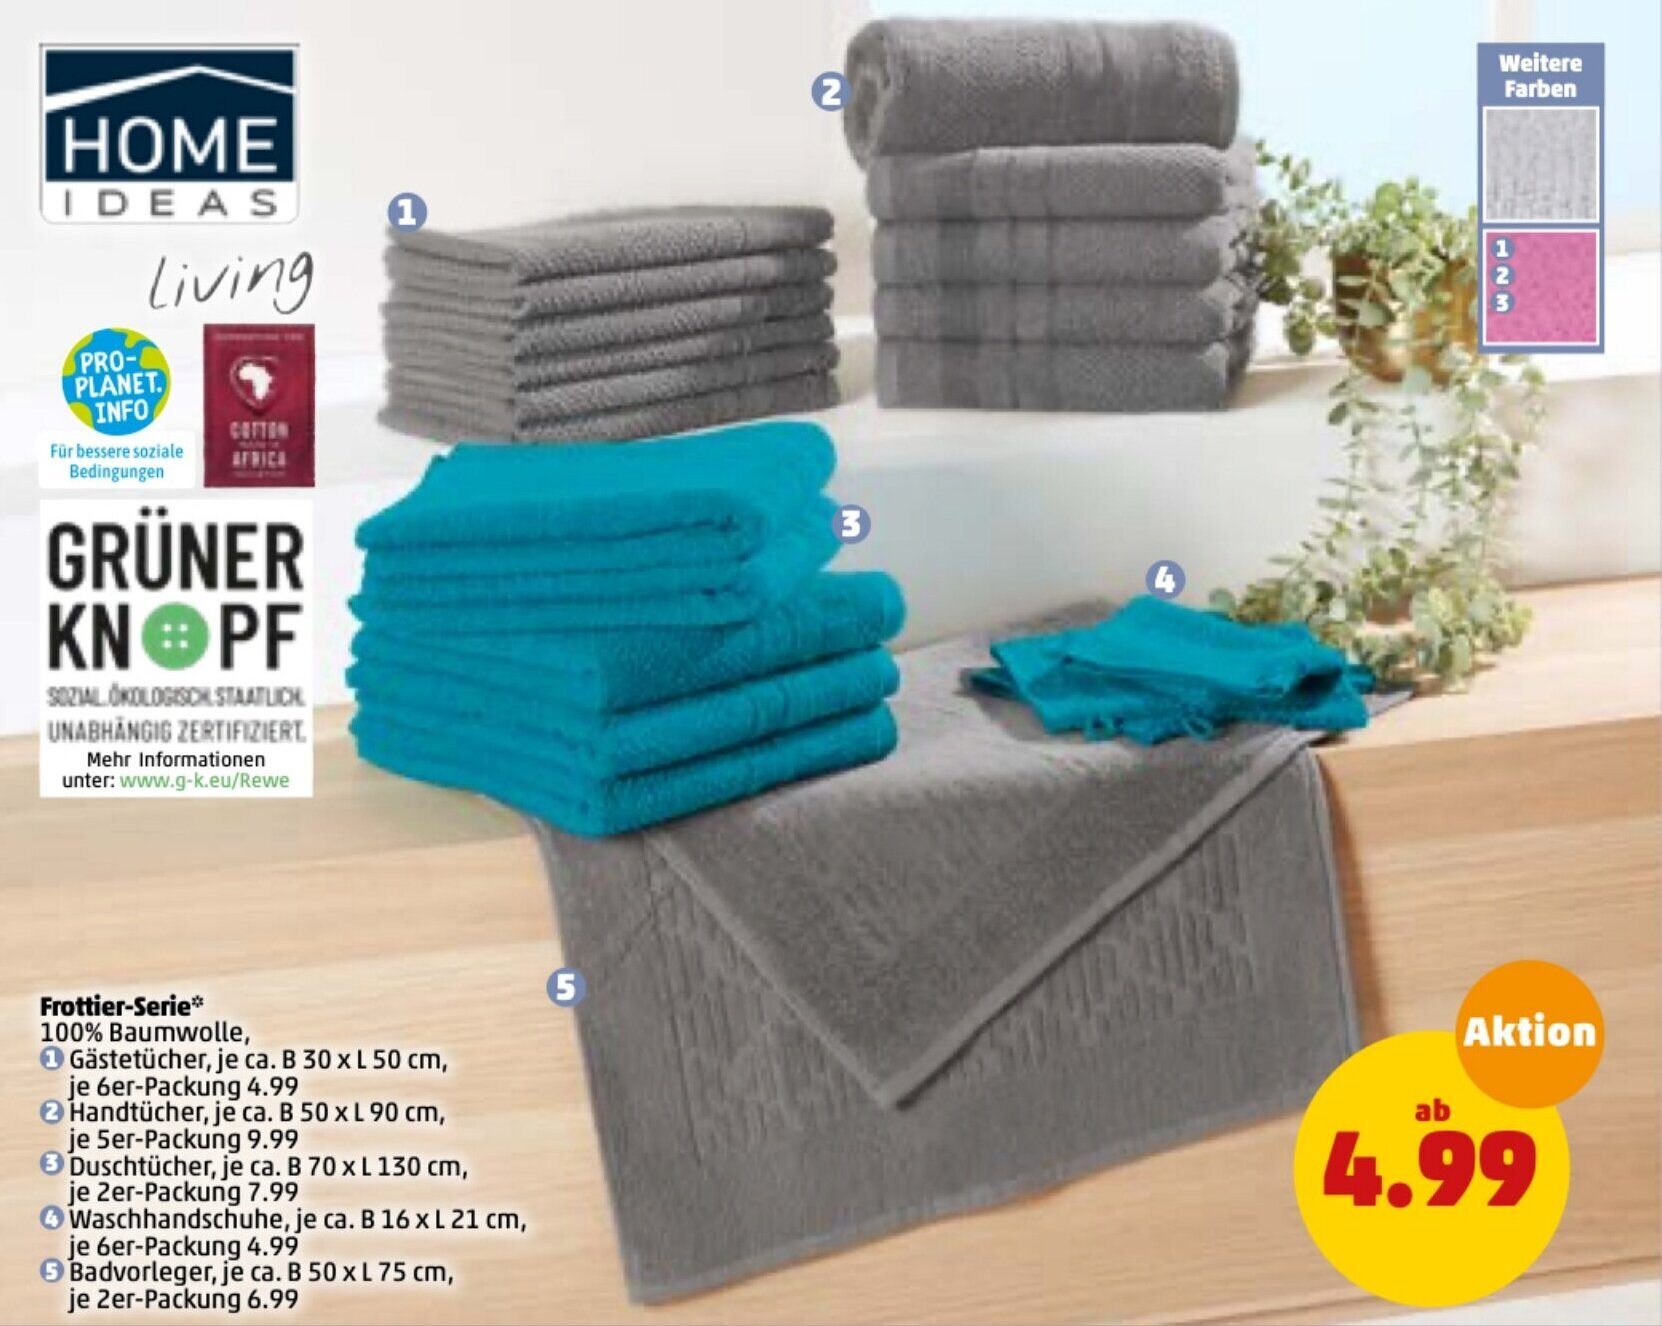 Home Ideas Living Frottier Serie Angebot bei PENNY